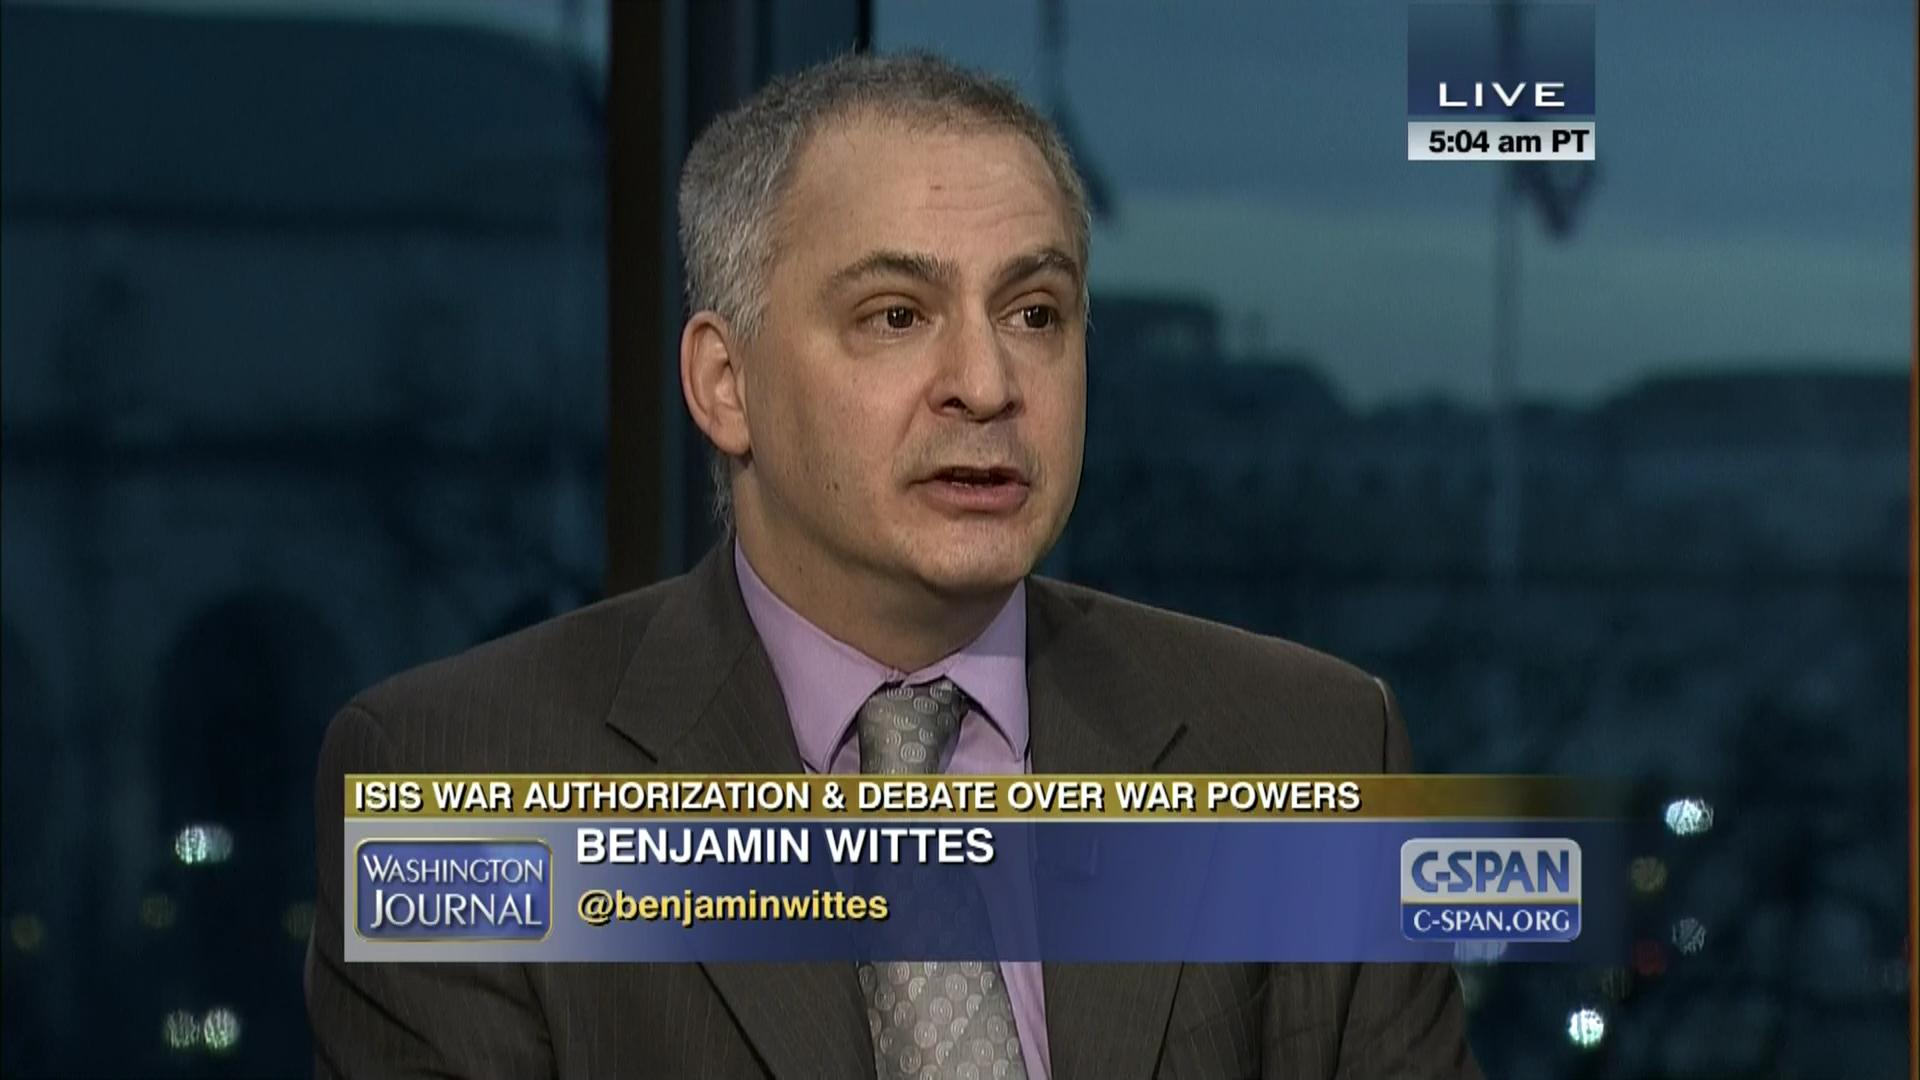 Image result for PHOTO OF BENJAMIN WITTES